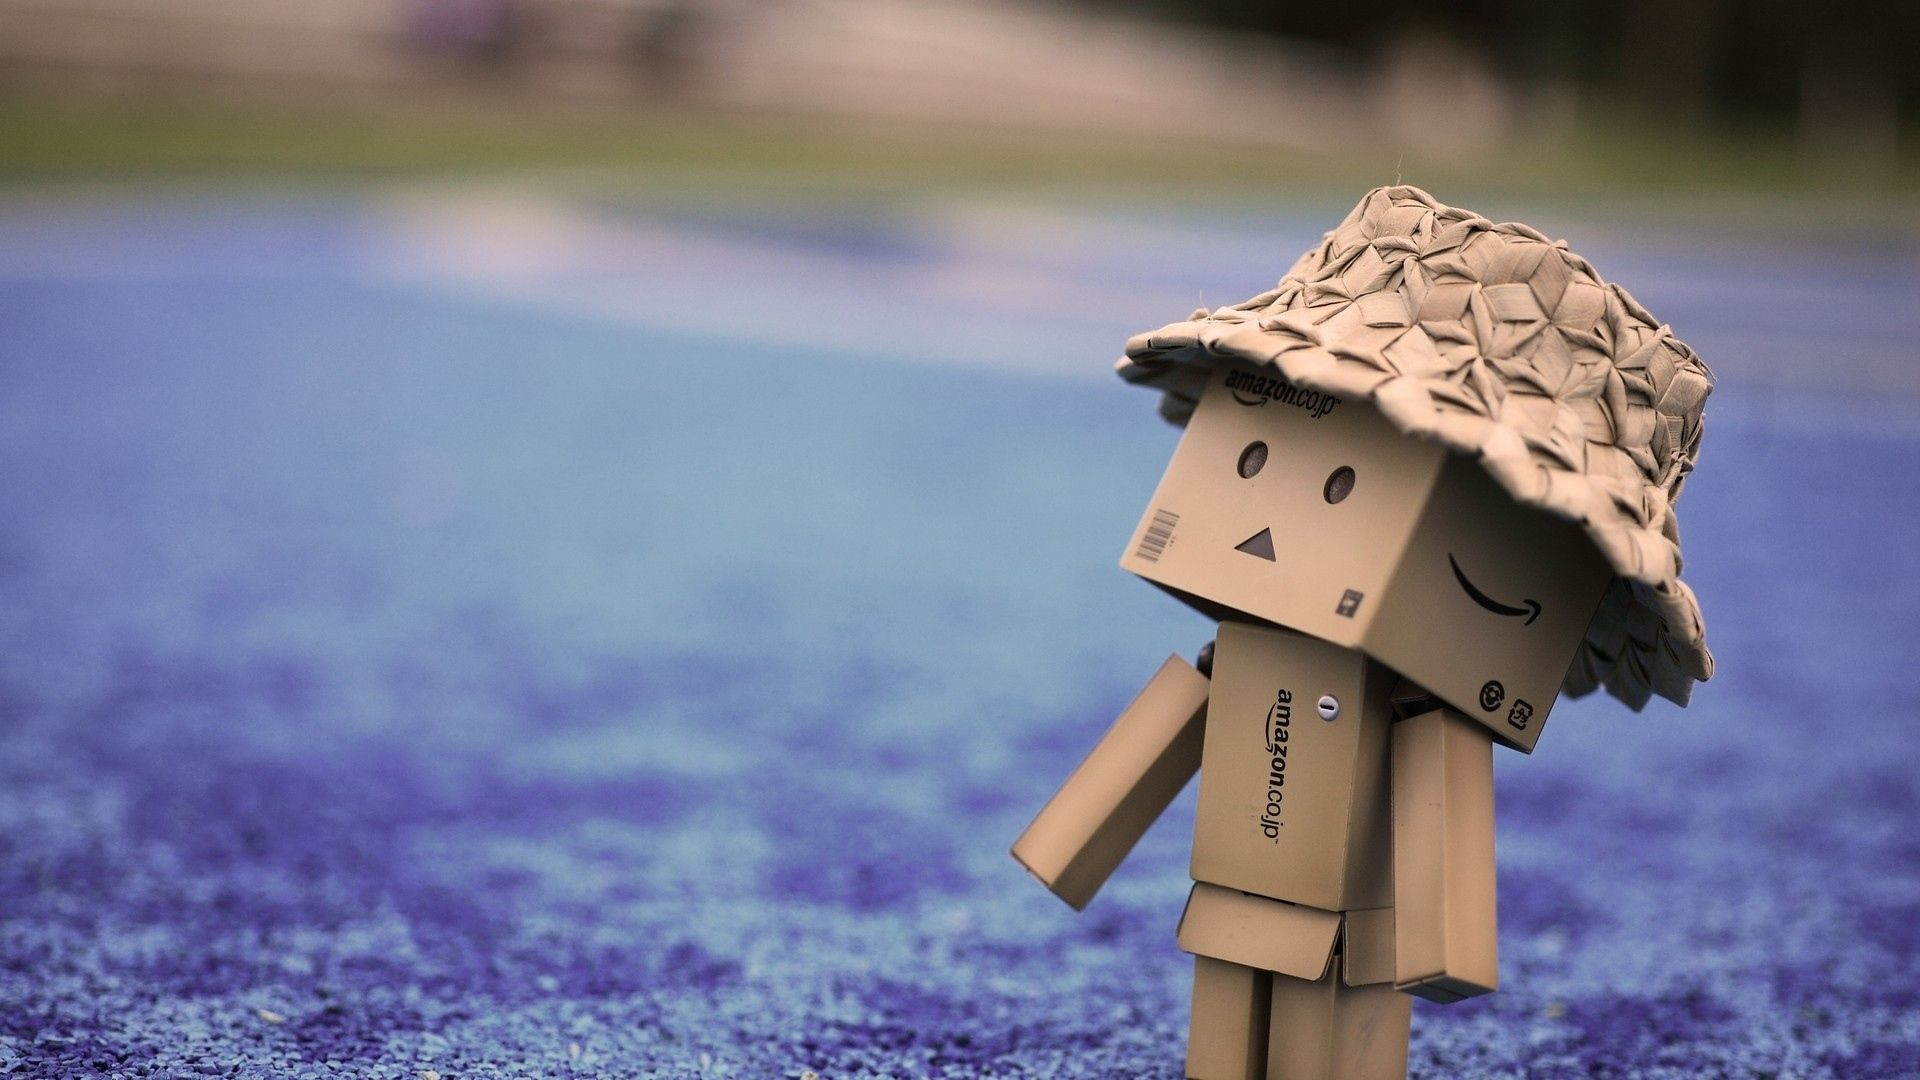 Pin By Jannell Nomee On Danbo Danbo Robot Wallpaper Photography Wallpaper